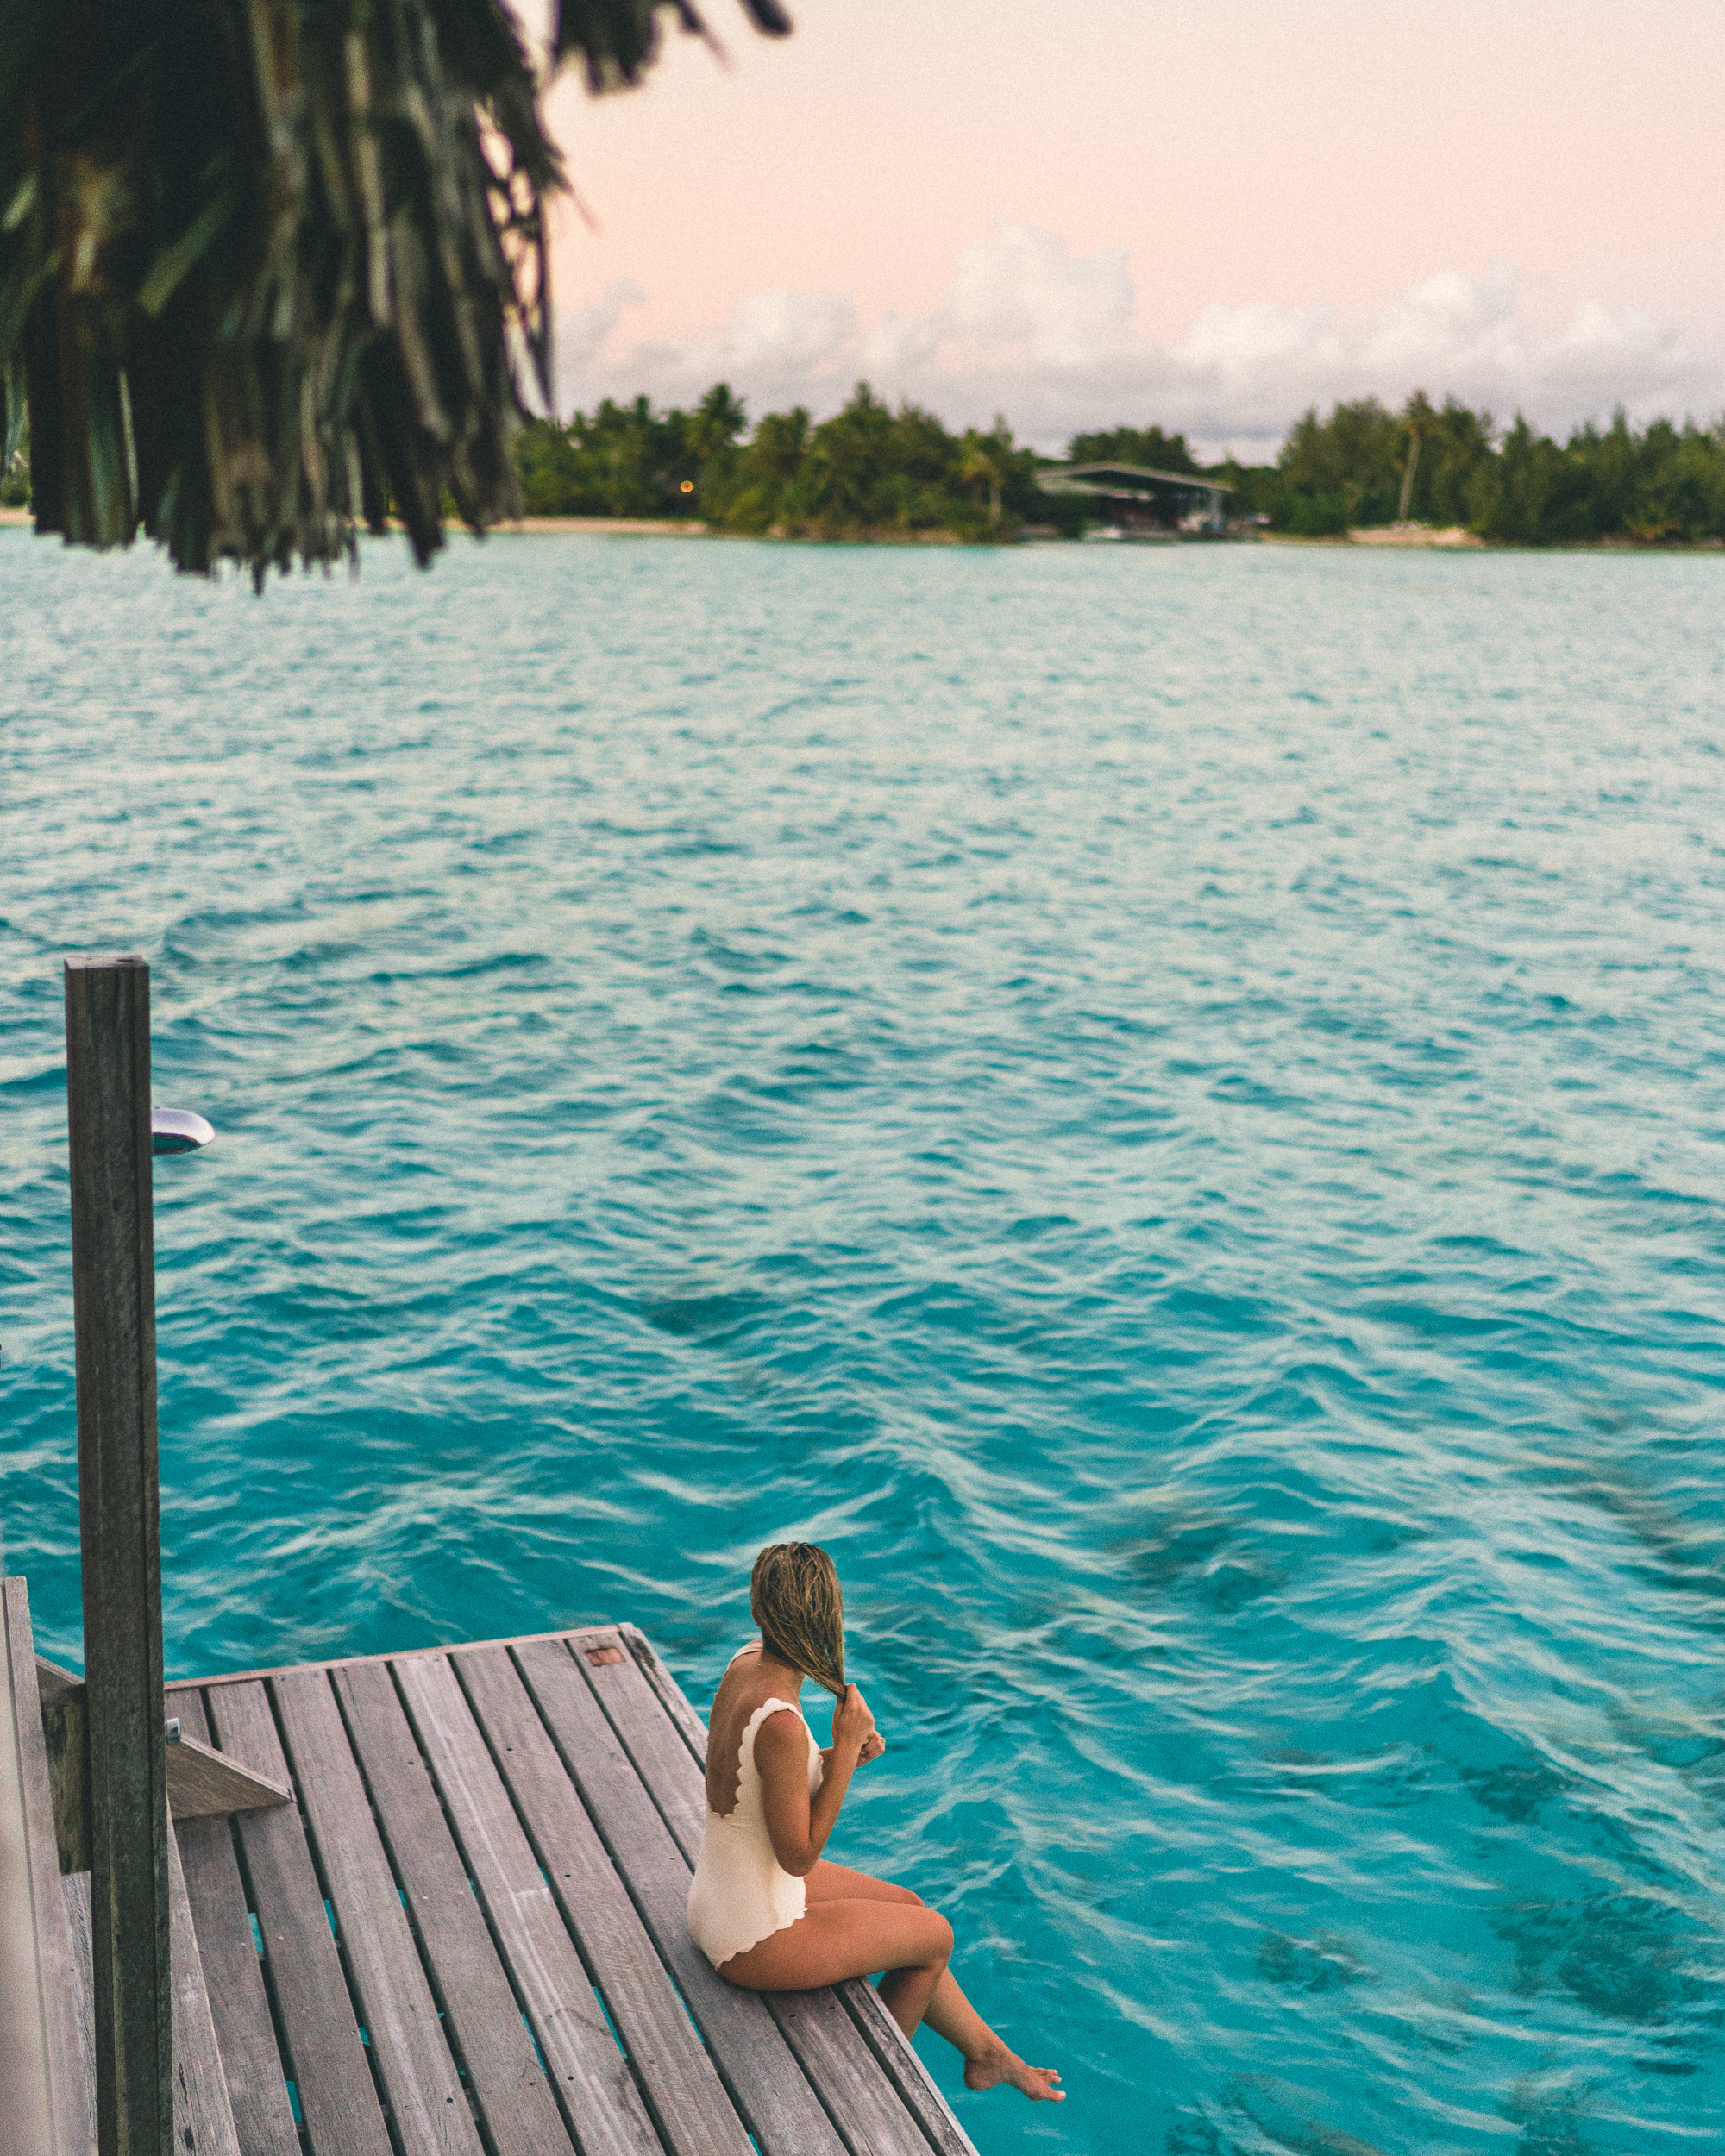 Four Seasons Bora Bora at sunset in Tahiti Honeymoon